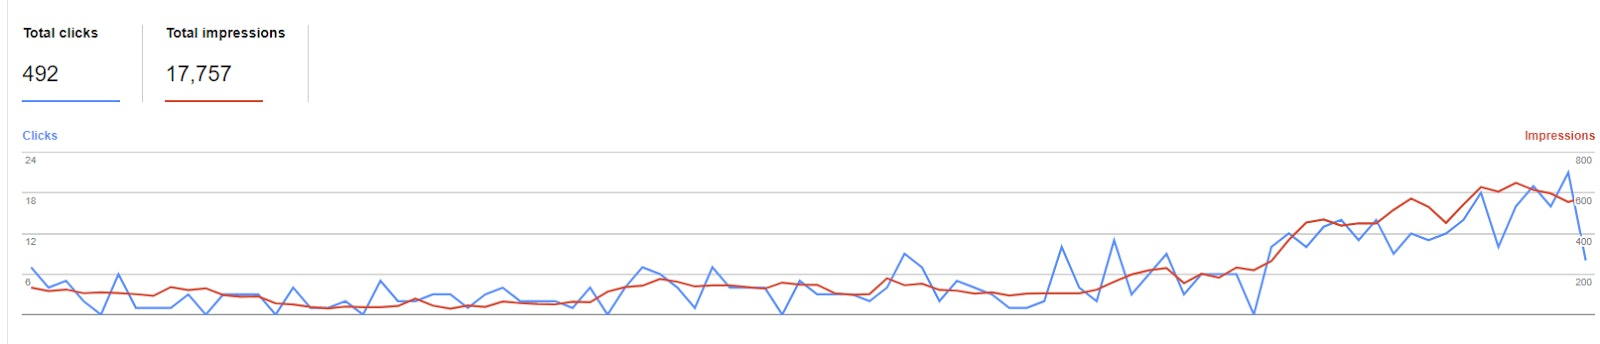 Google Data 90 Days